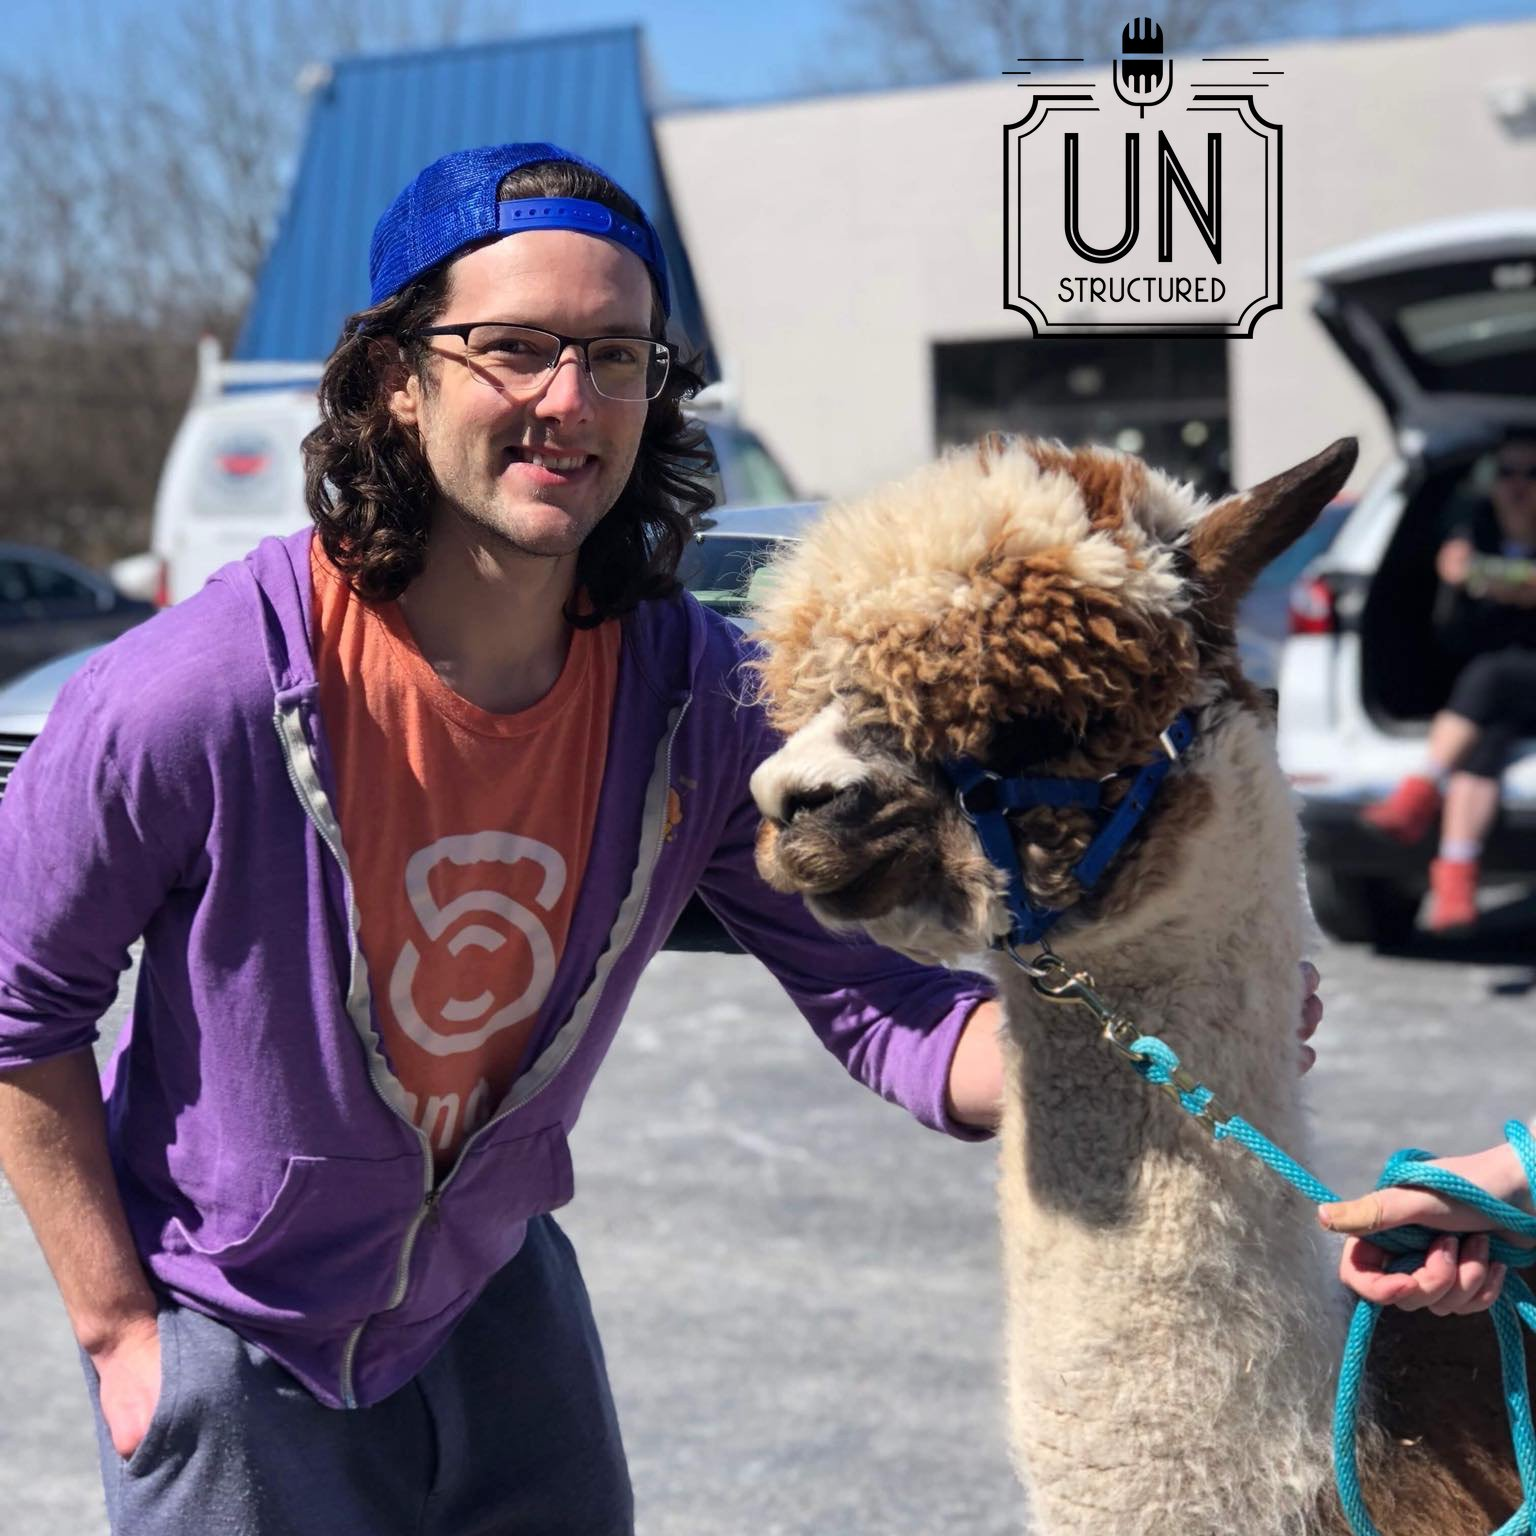 115 - Pat Flynn - Unique wide-ranging and well-researched unstructured interviews hosted by Eric Hunley UnstructuredPod Dynamic Informal Conversations